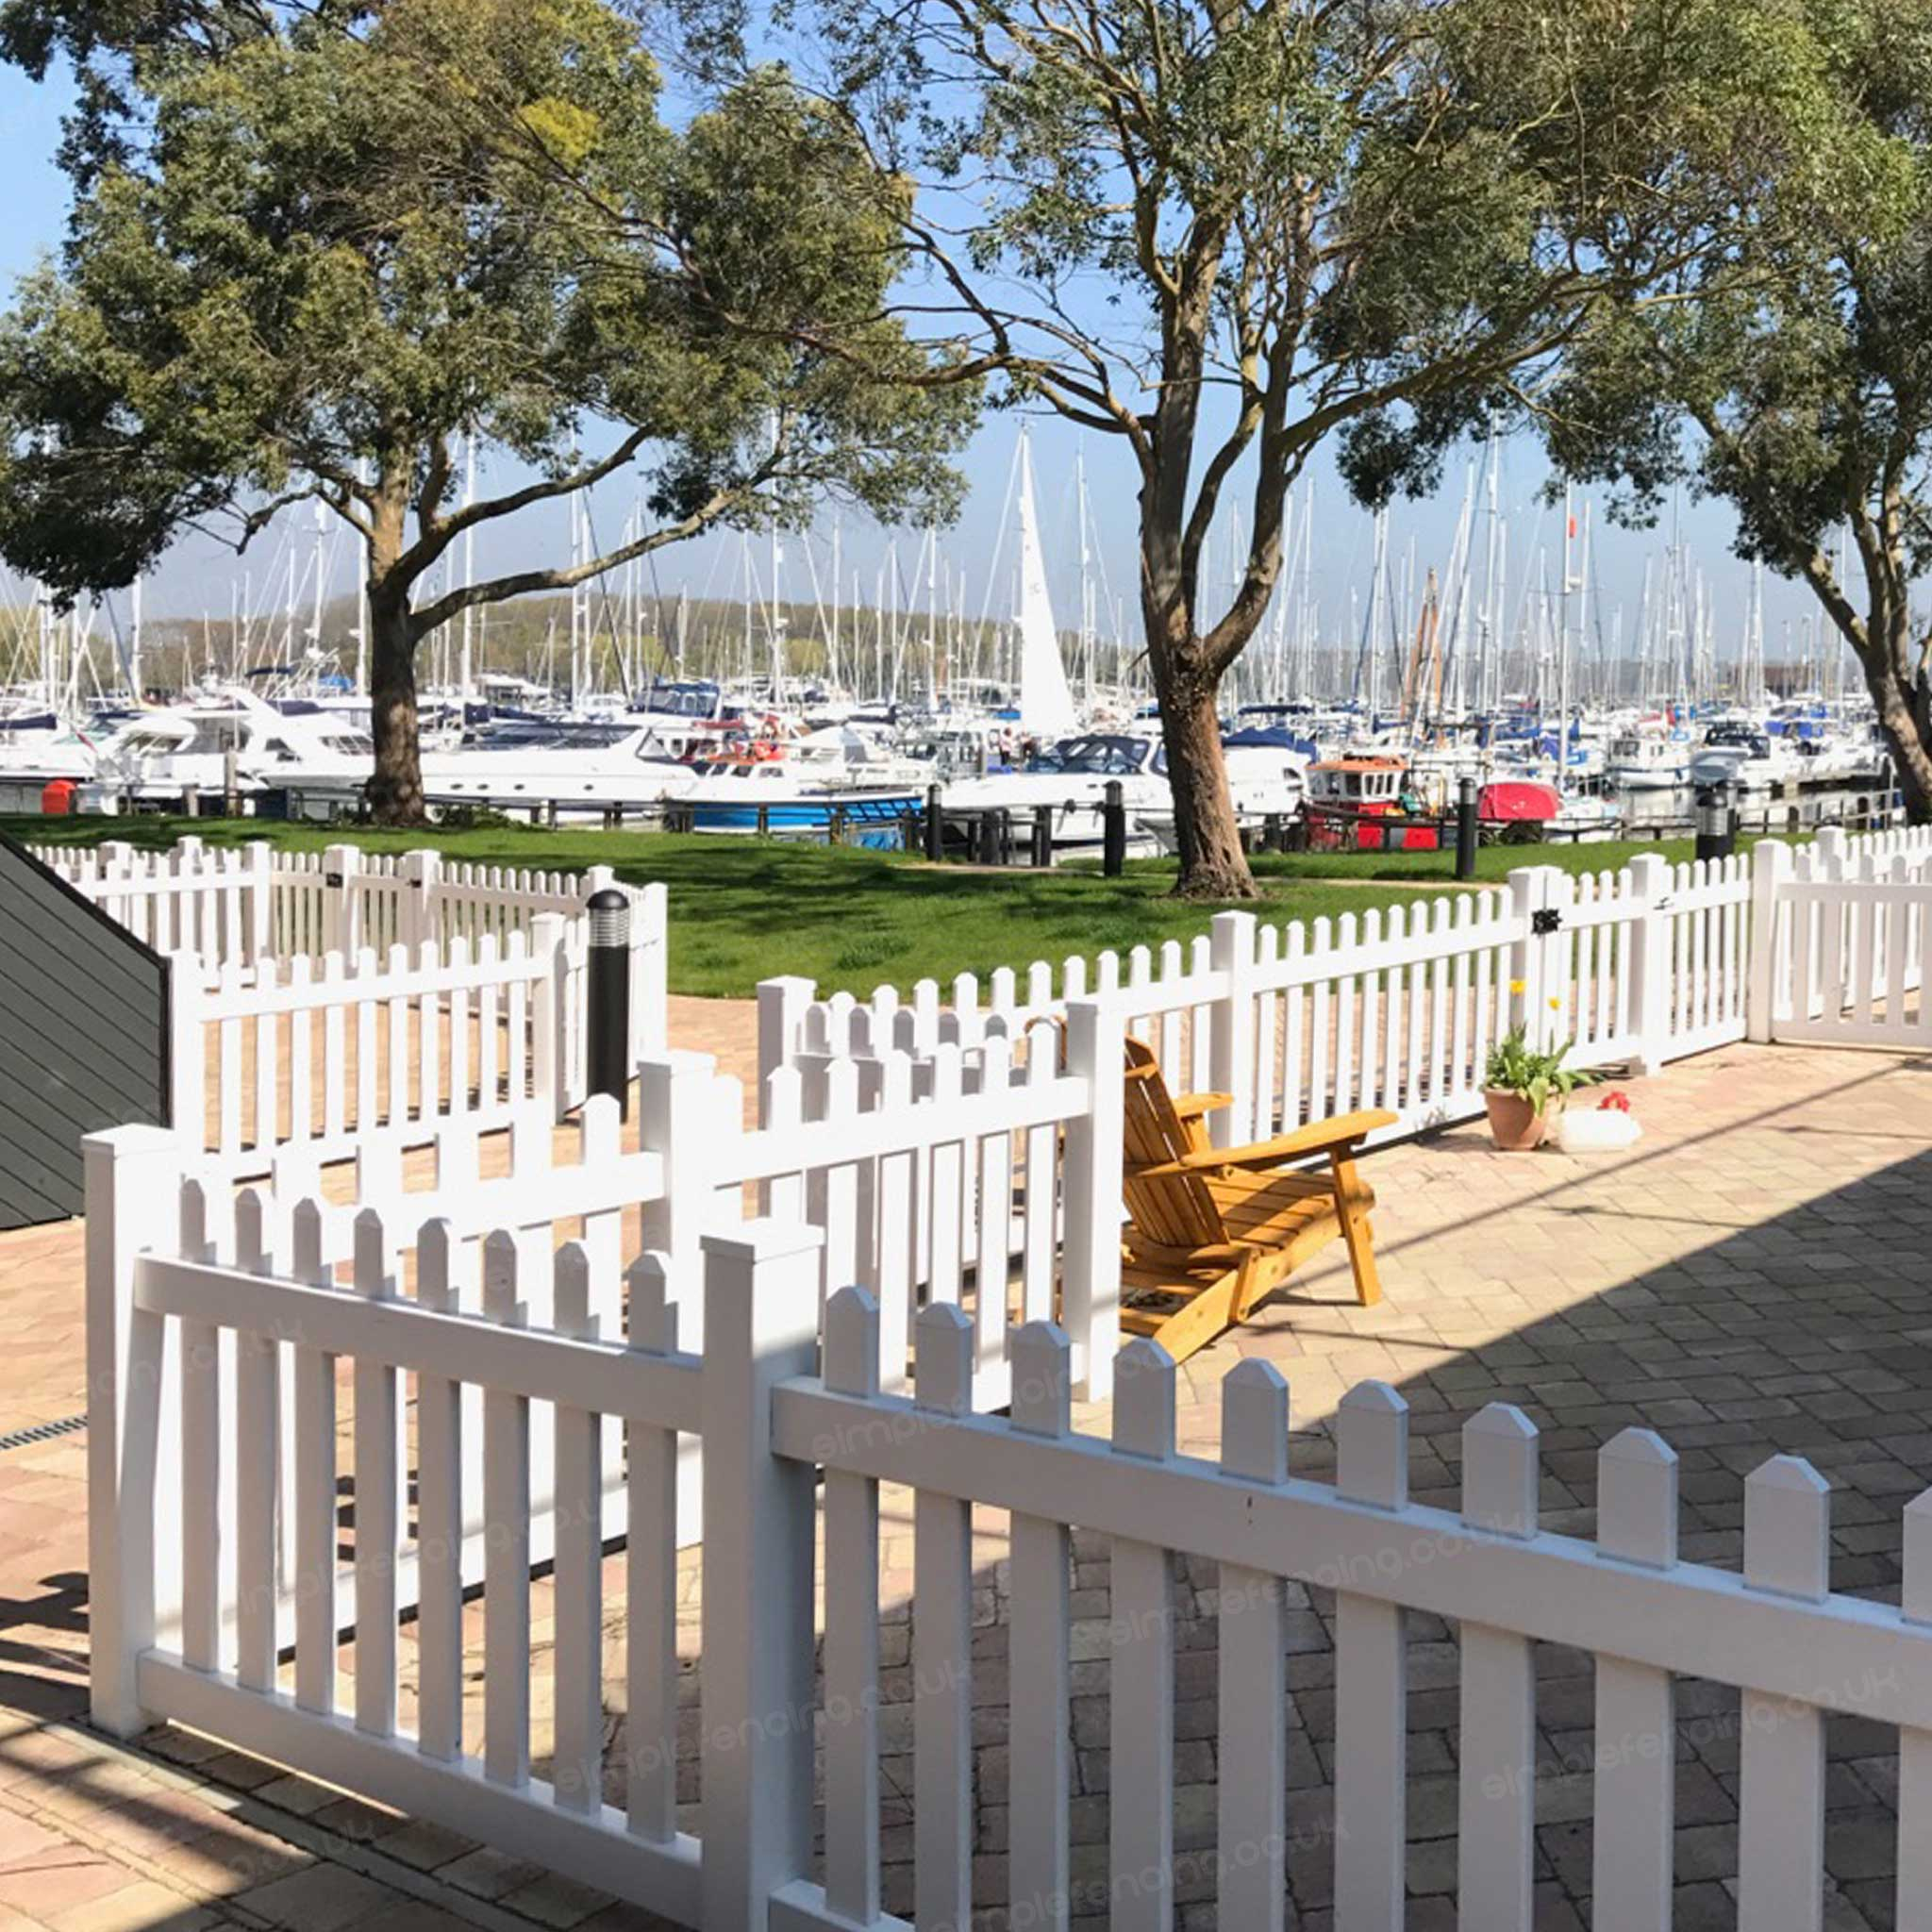 Simple Picket Fence: Straight 6 Ft. W X 2.5 Ft. H Picket Fence Panel